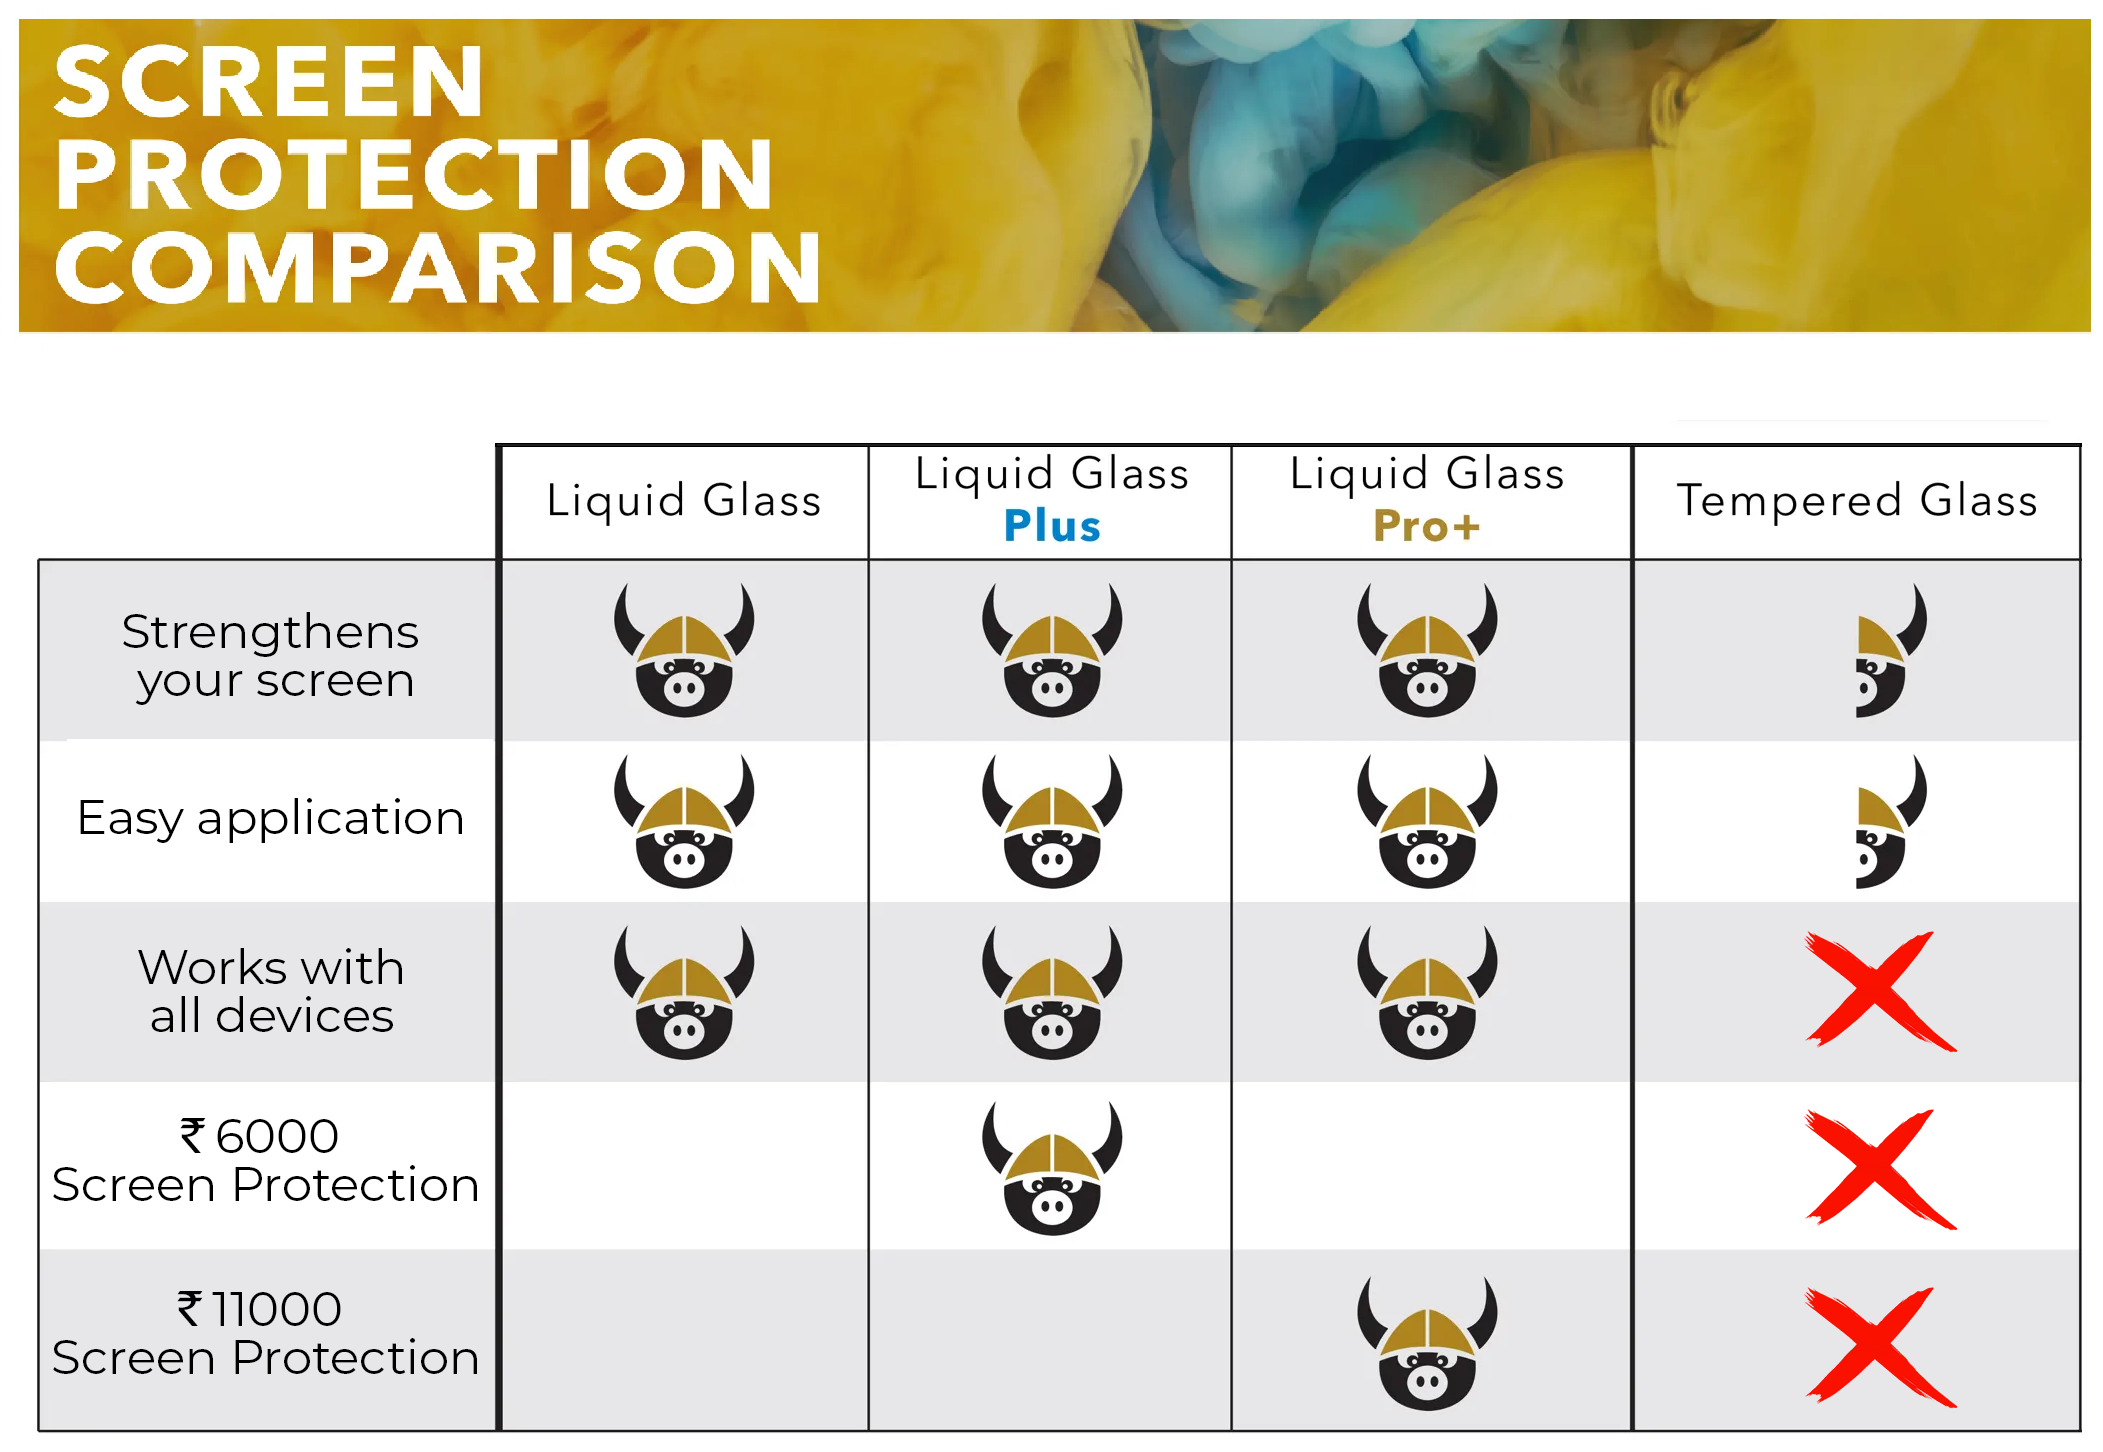 Comparison of Liquid Glass with Tempered Glass